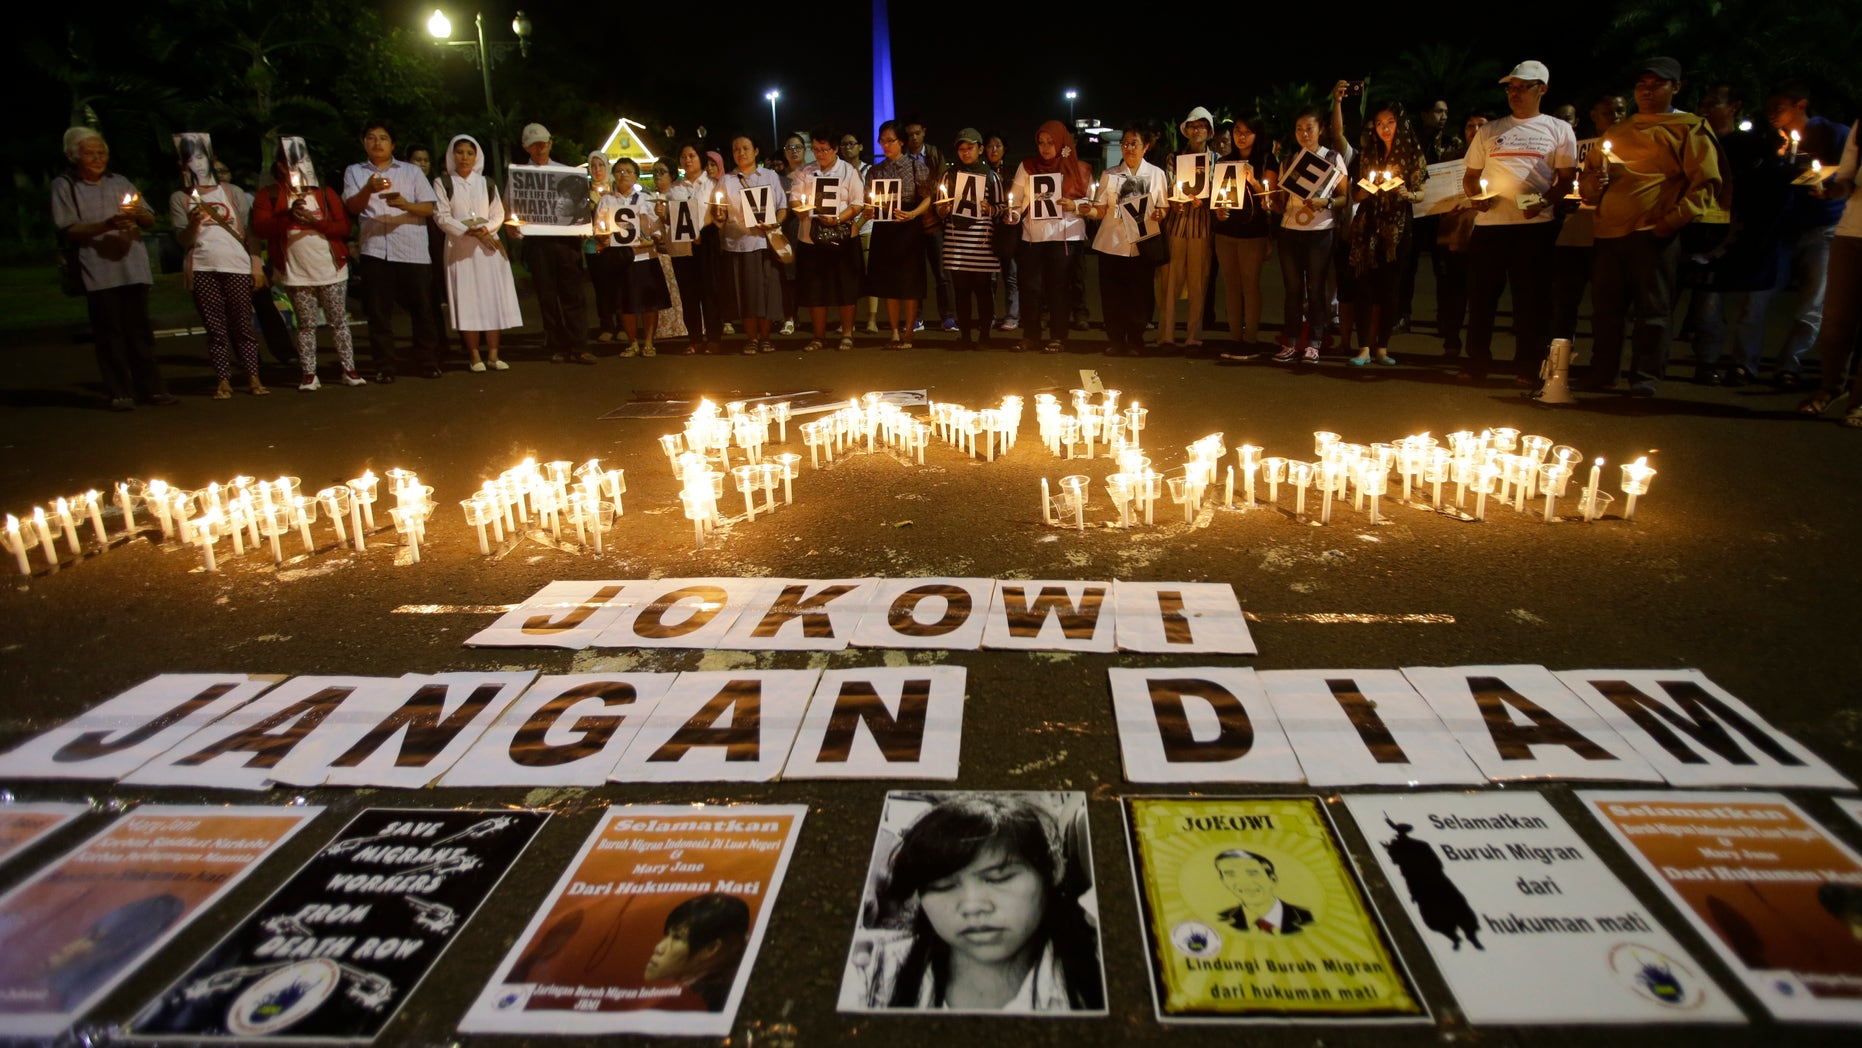 "April 27, 2015 - Indonesian protesters gather with candles and banners that read "" Save the Mary Jane, Jokowi (President Joko Widodo), Don't be silent"" during a demonstration to demand the government to stop the execution of convicted Filipino Mary Jane Veloso, in Jakarta, Indonesia."